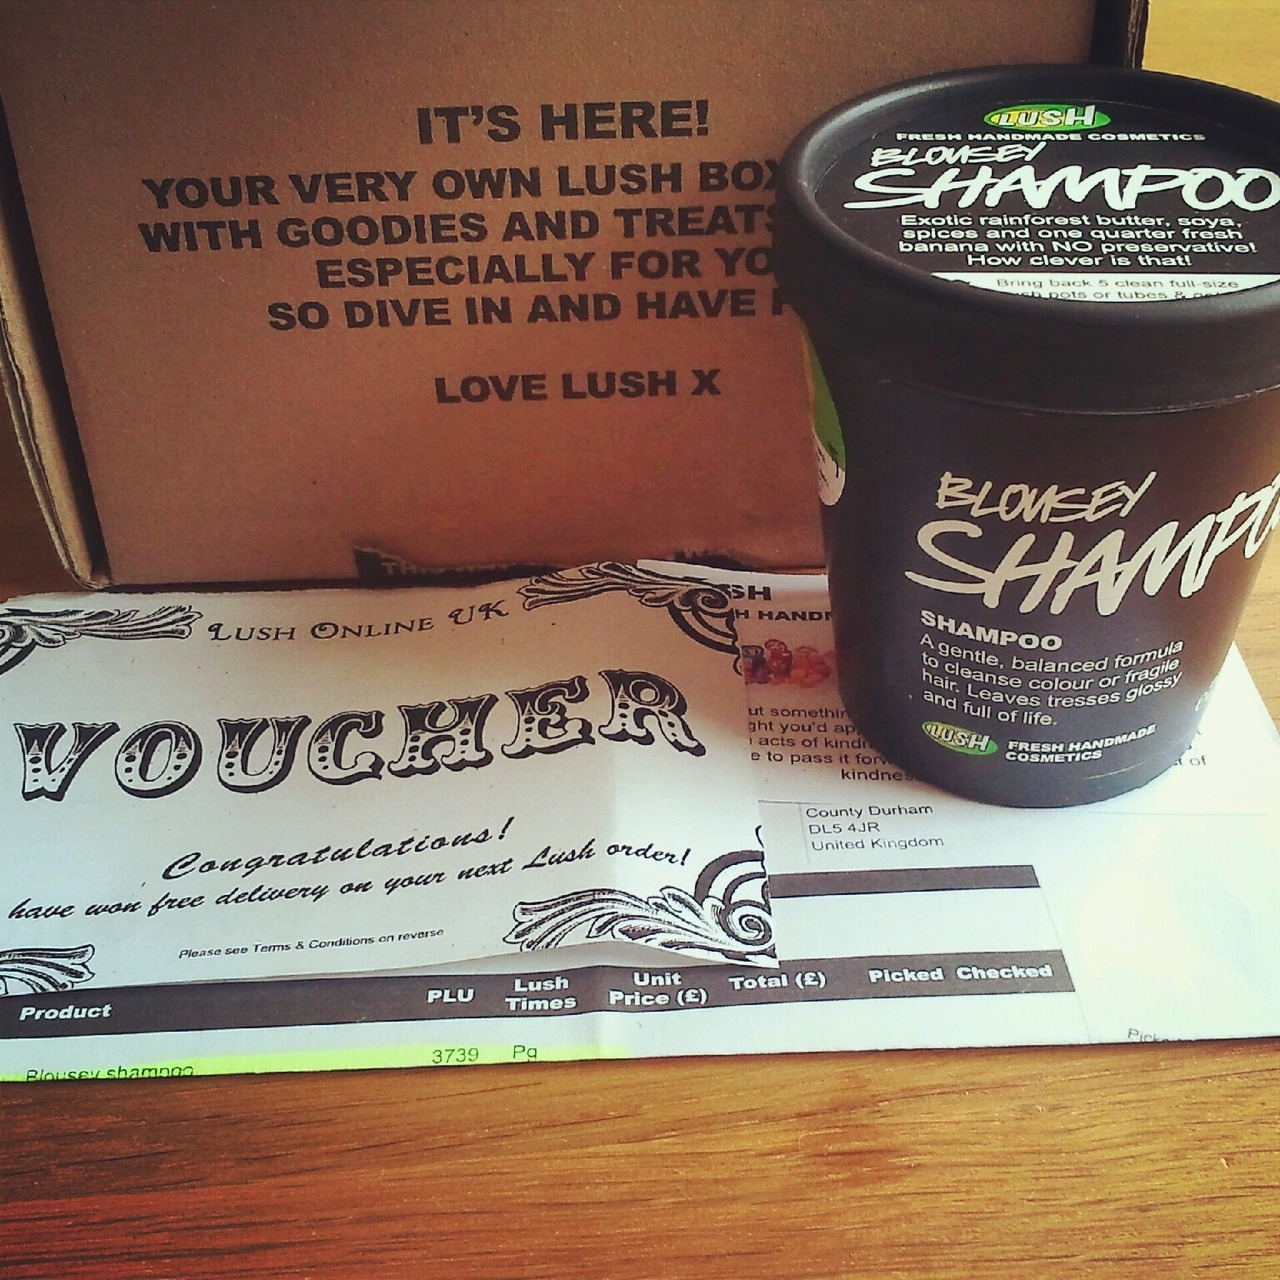 moonbeam-from-lightning:  shaunad:  My special hair care order came :) I won a free delivery voucher and got another free chunk of Ice blue soap. I'm so excited for the shampoo, it smells like a banana and blackcurrant smoothie.  So jealous!!  Oh my GOSH I am so ridiculously excited for this shampoo!!